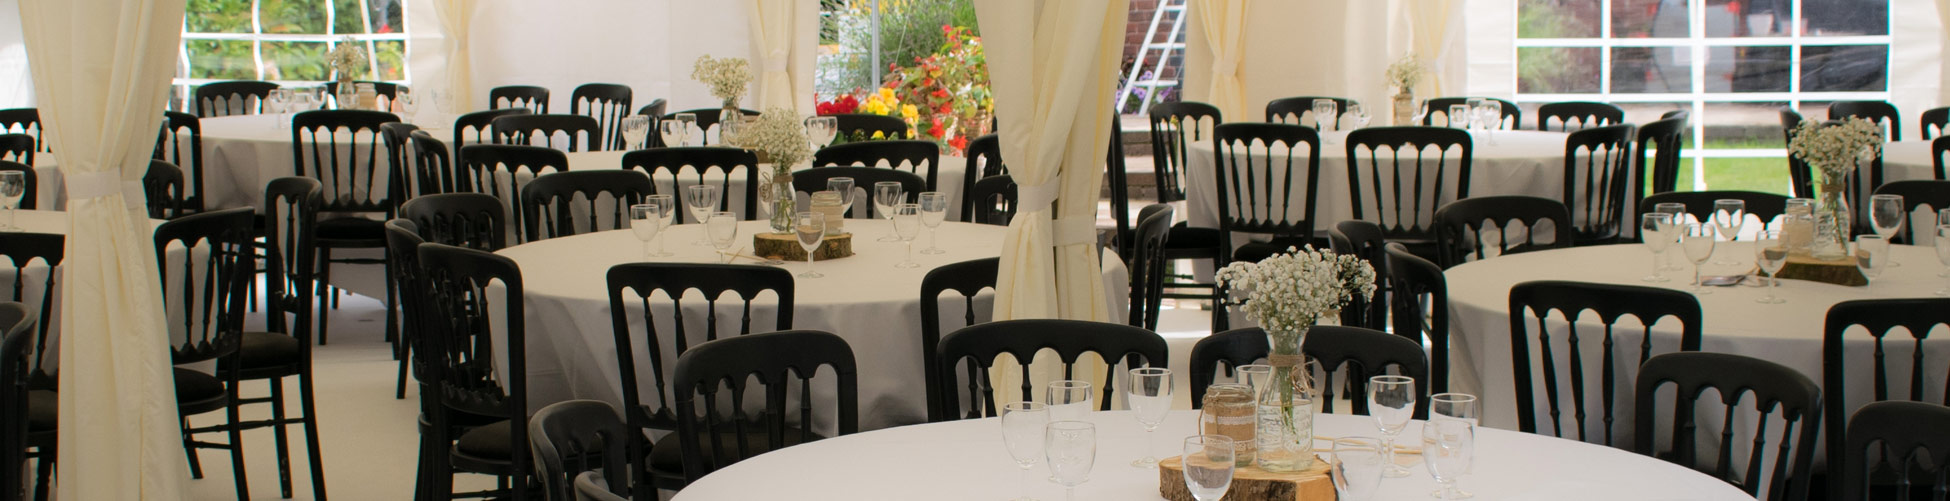 Luxury marquee hire fareham wedding marquees for hire fareham